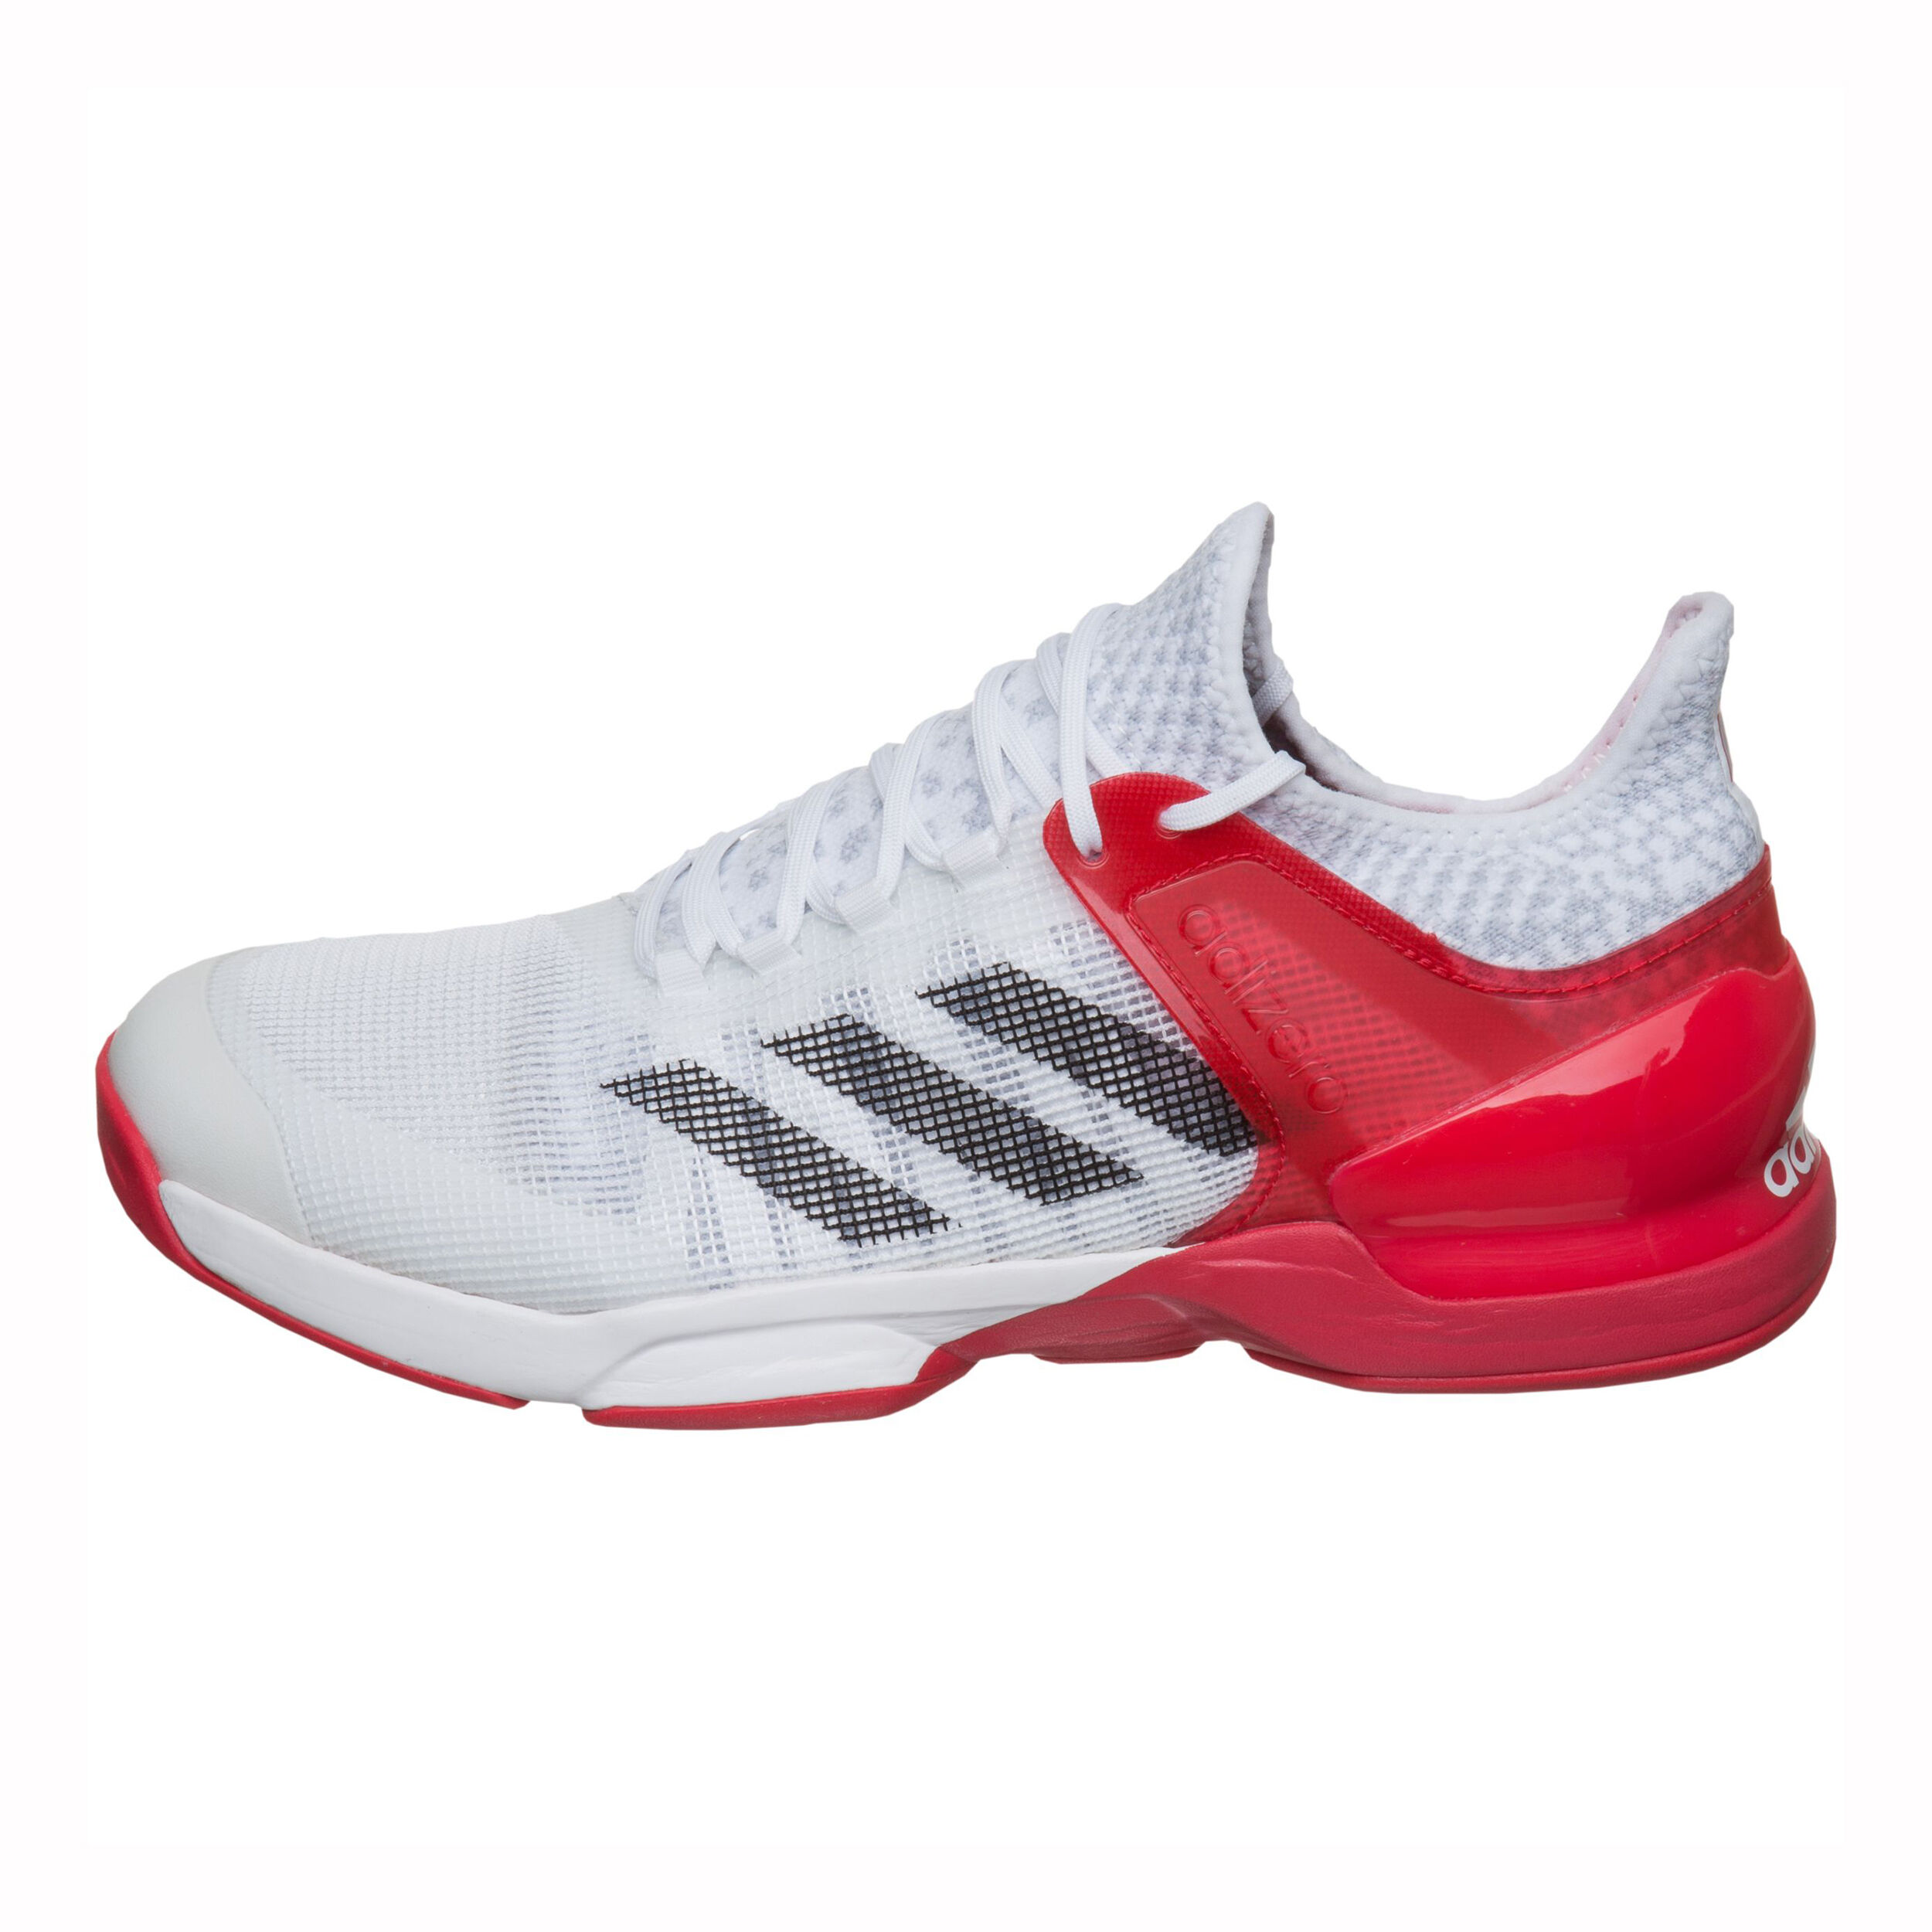 adidas Adizero Ubersonic 2 Chaussures Toutes Surfaces Hommes